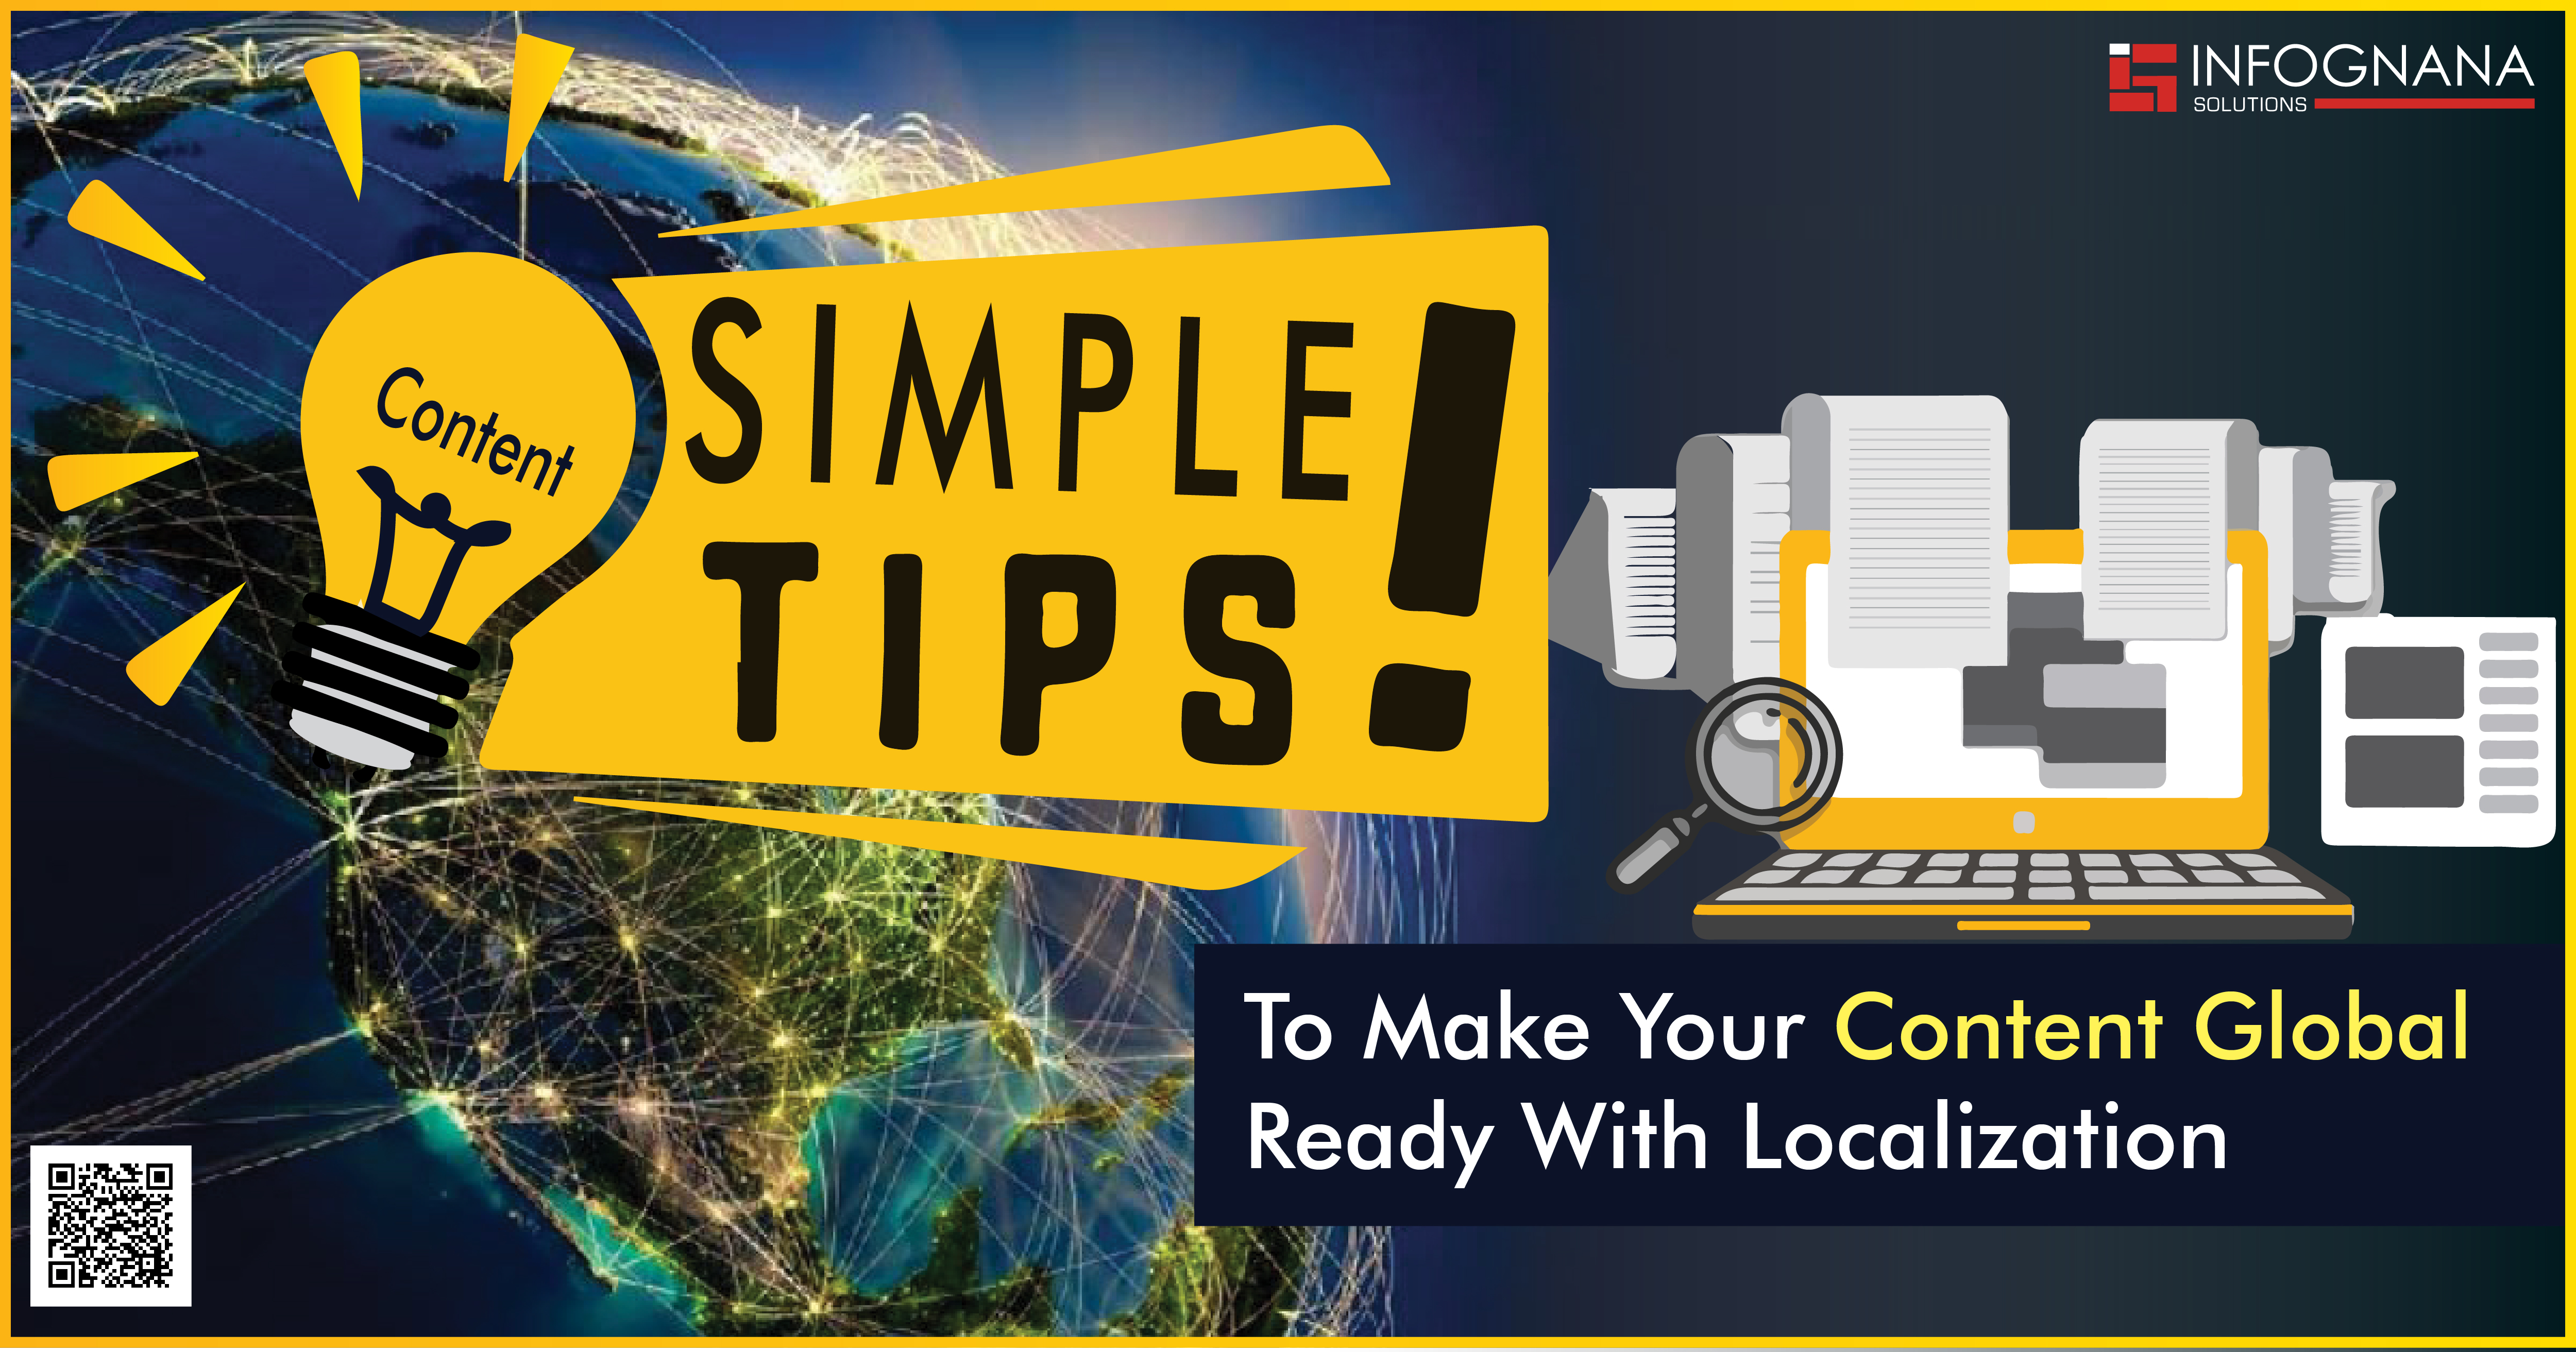 Simple Tips to Make Your Content Global Ready With Localization